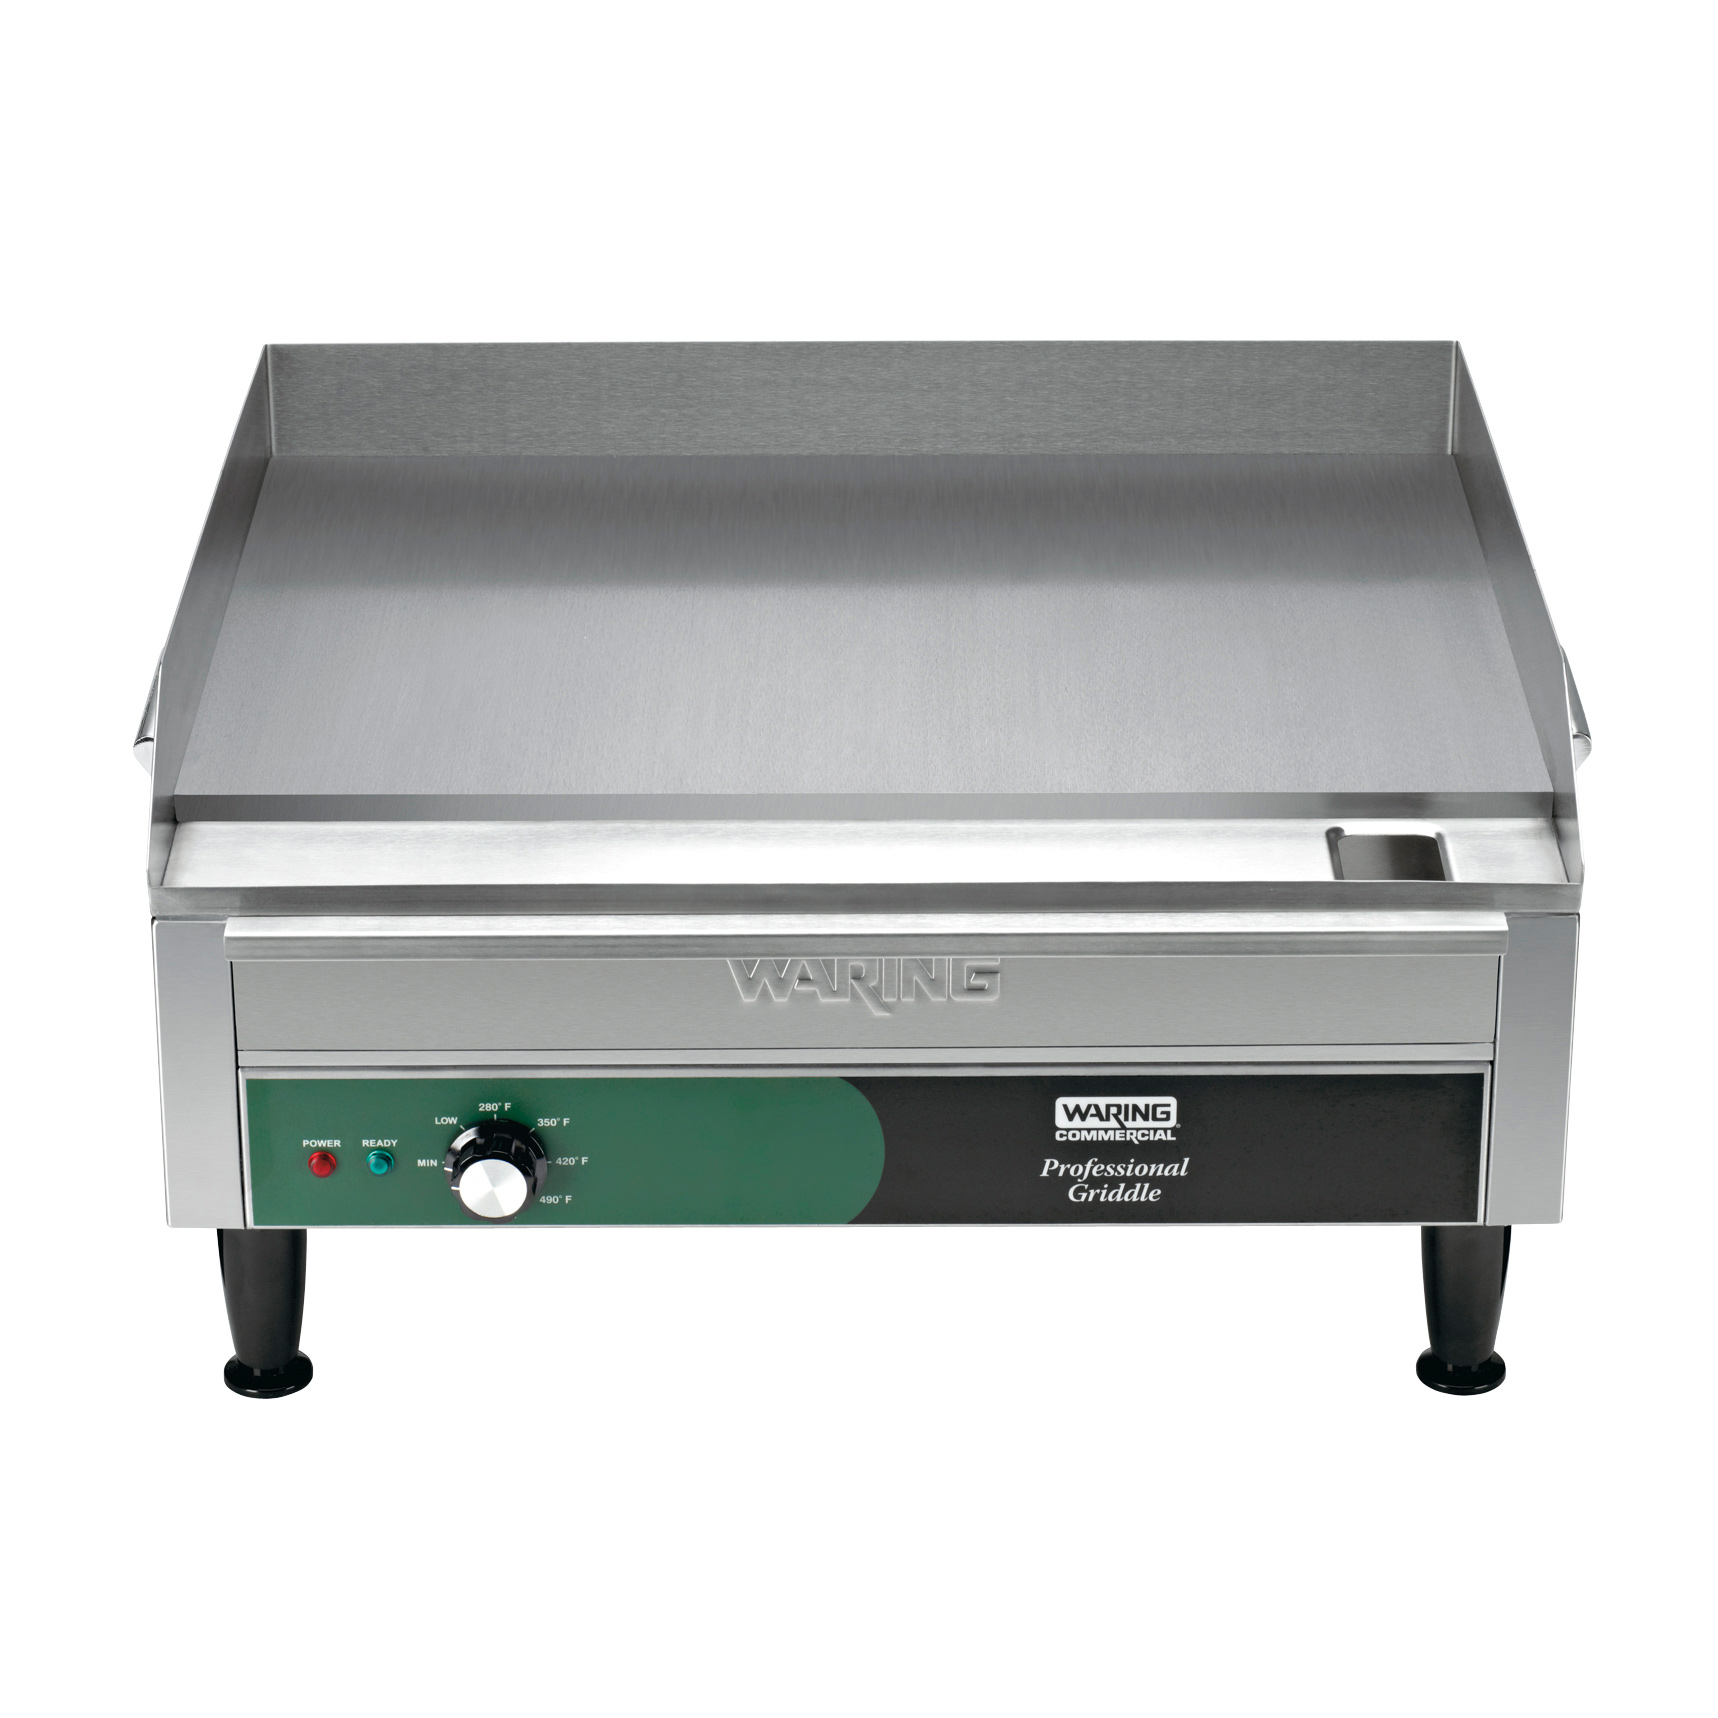 Waring WGR240X griddle, electric, countertop